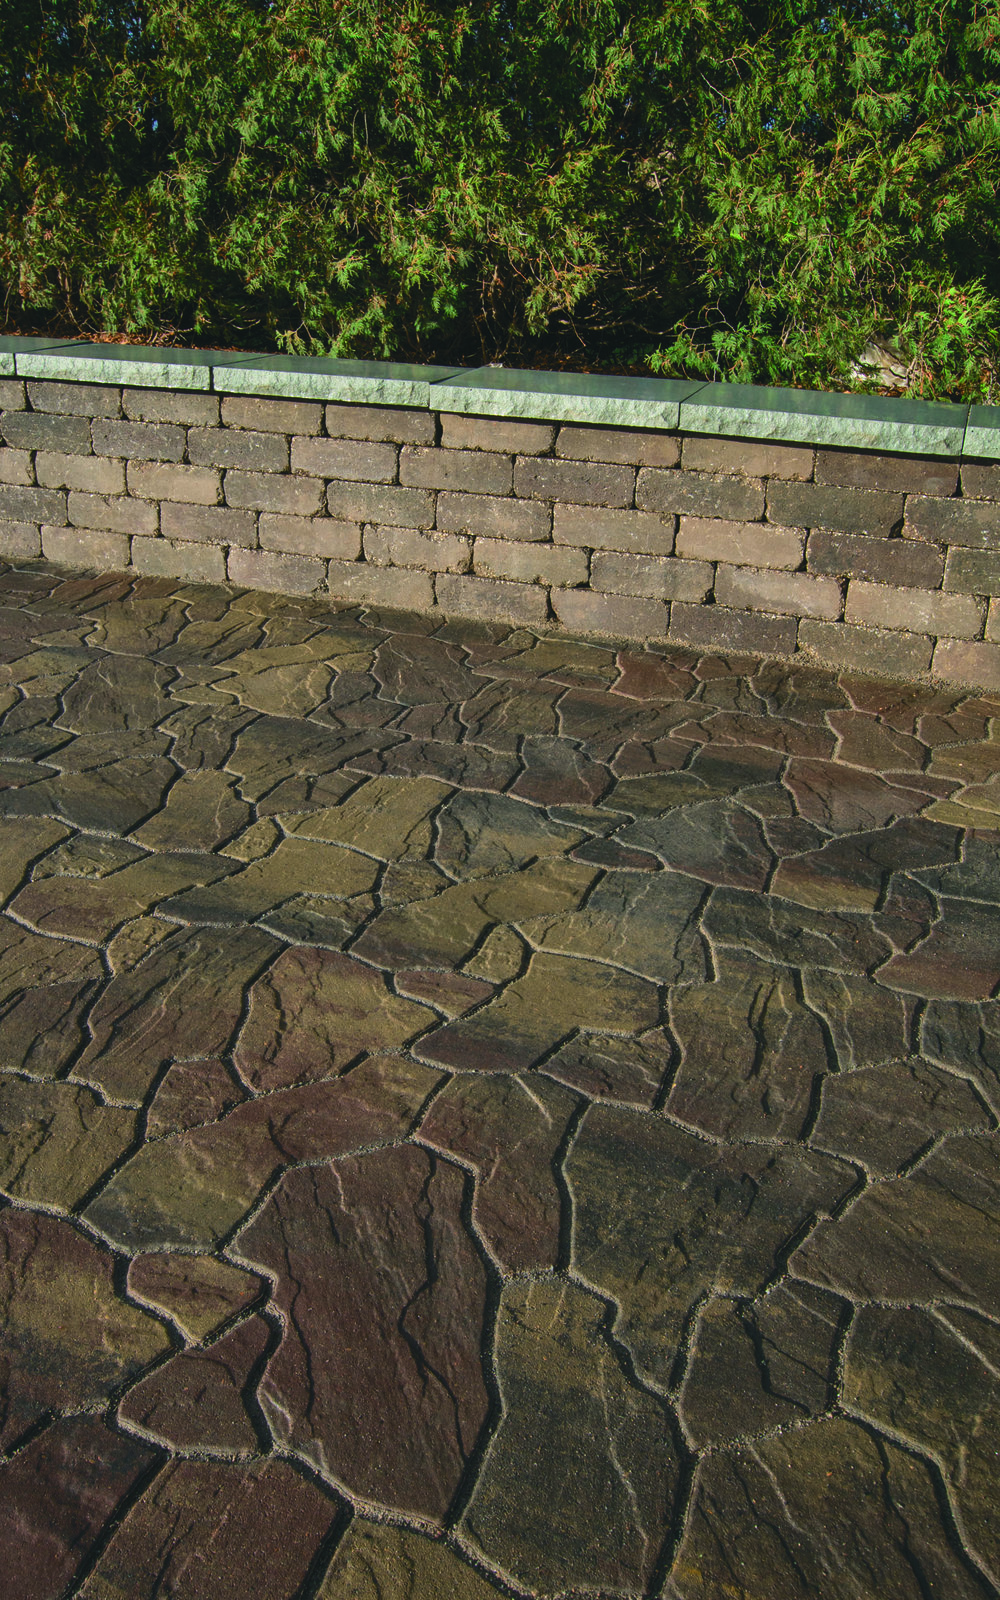 Flagstone Concrete Pavers - Image courtesy of Interlock